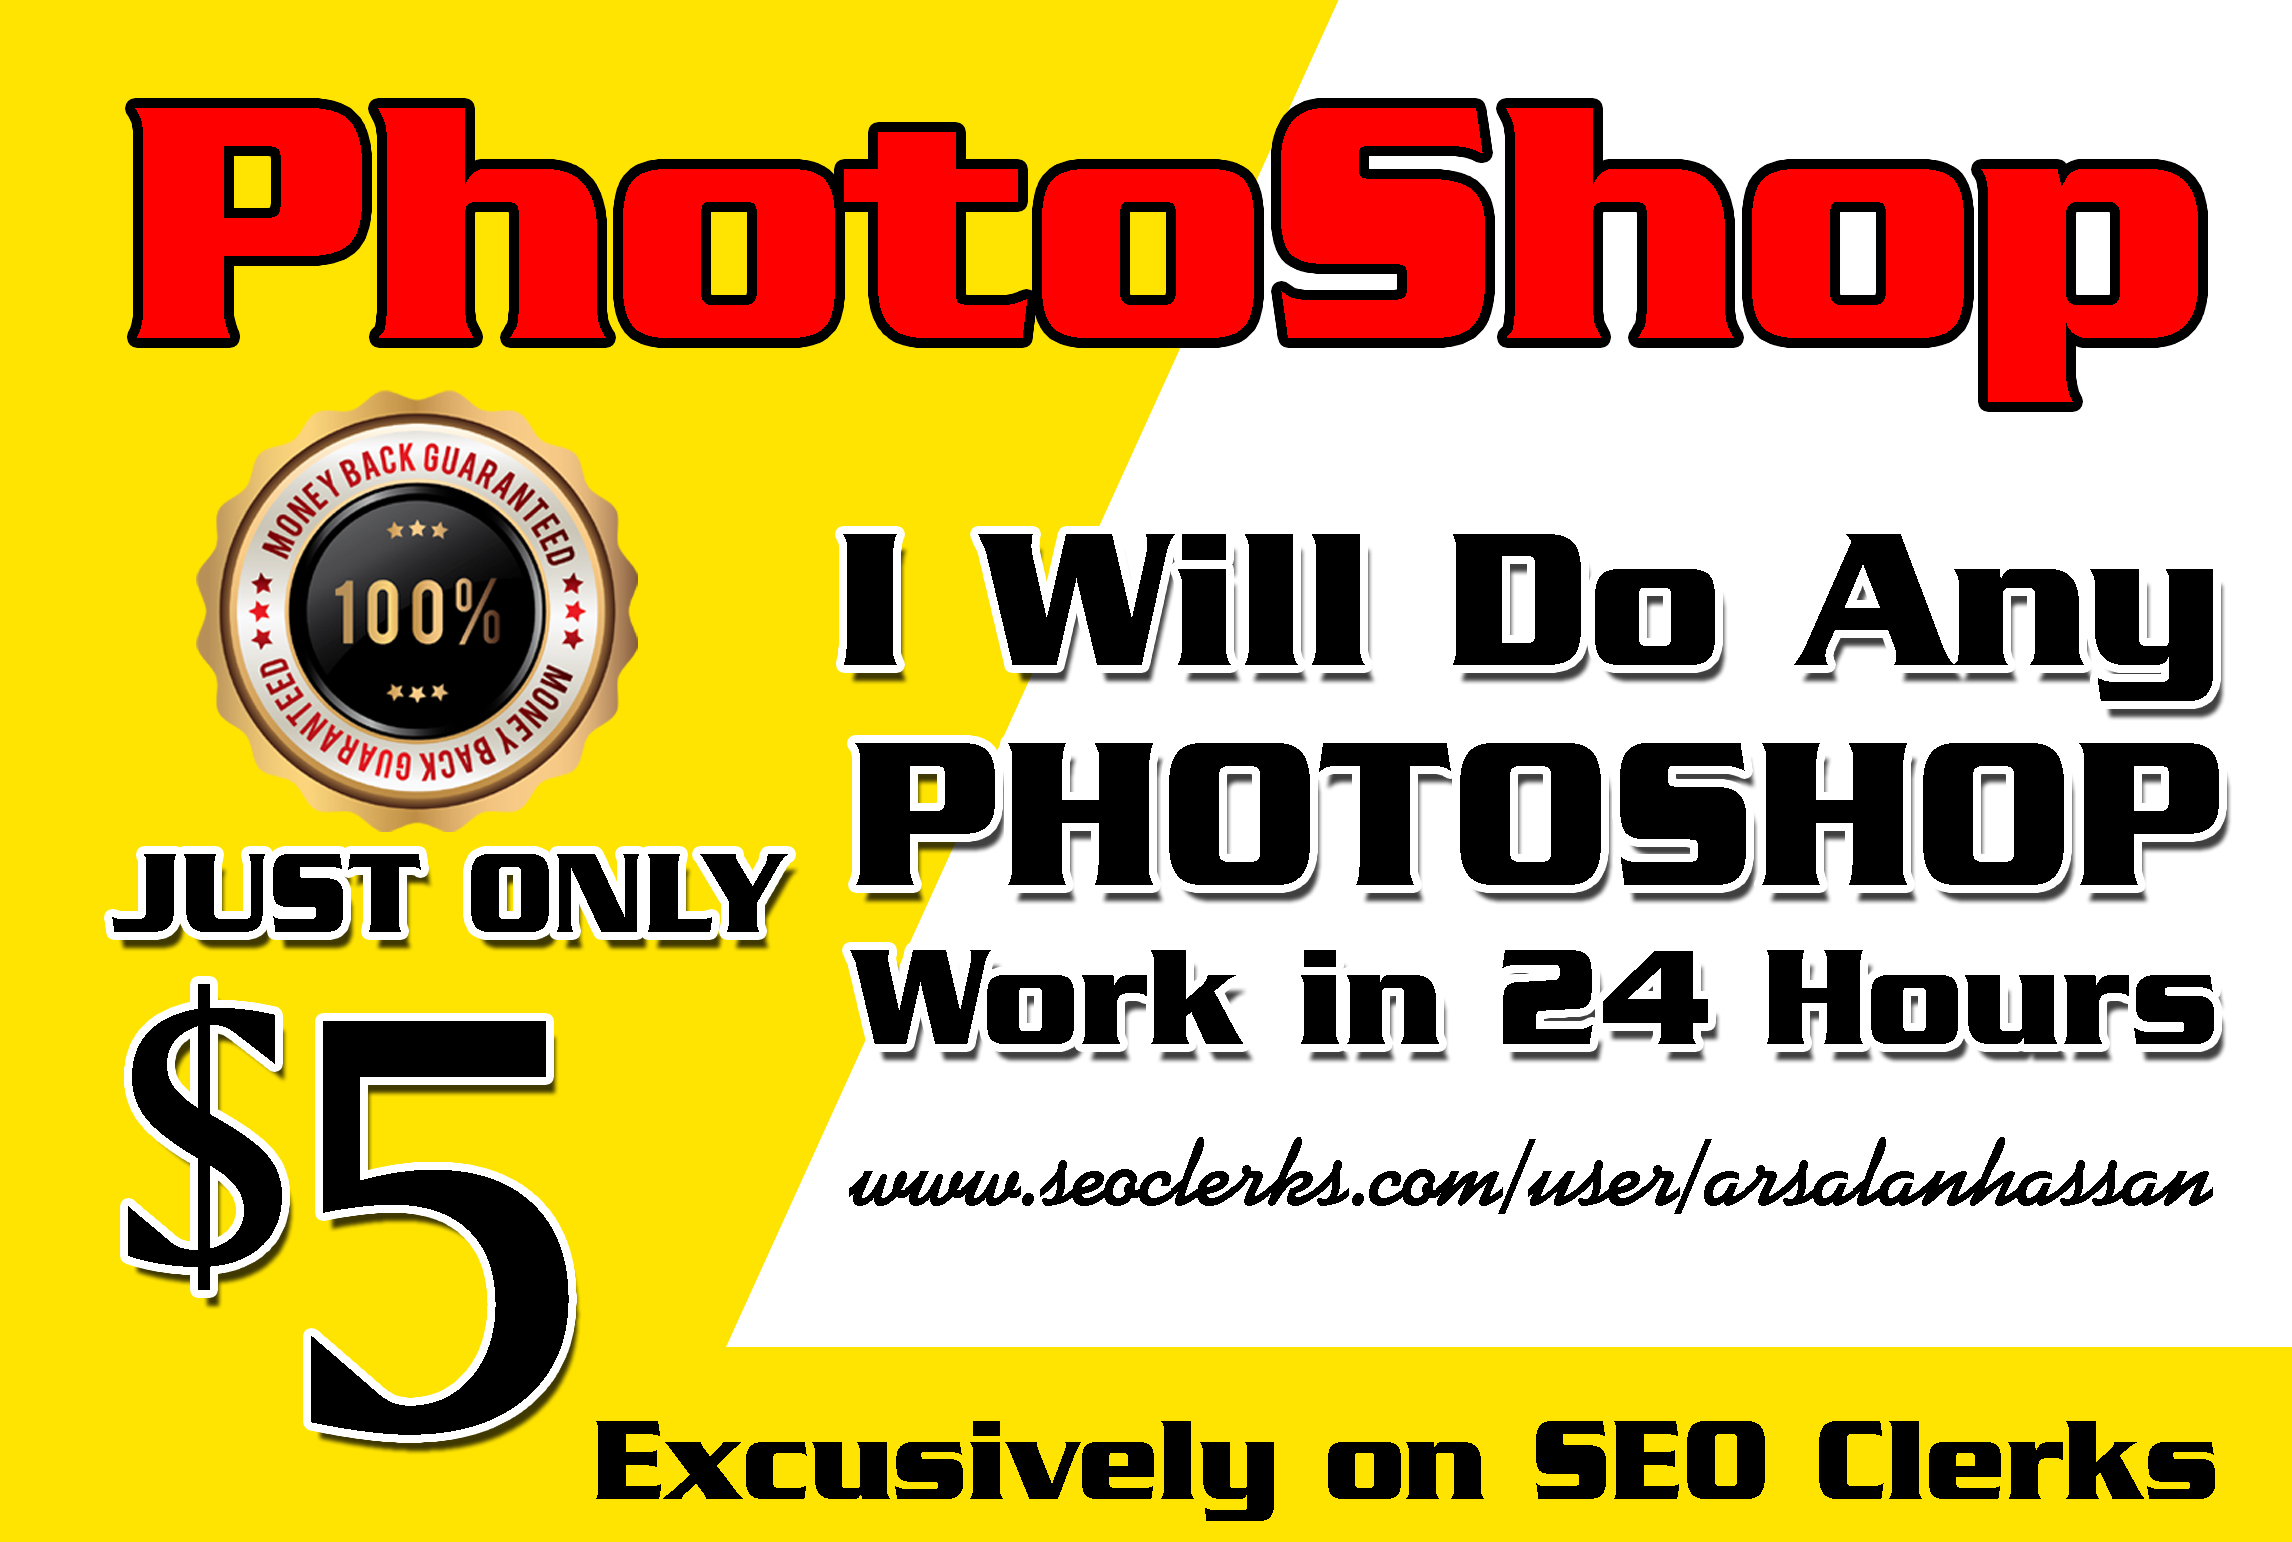 Do any photoshop work in 24 hours